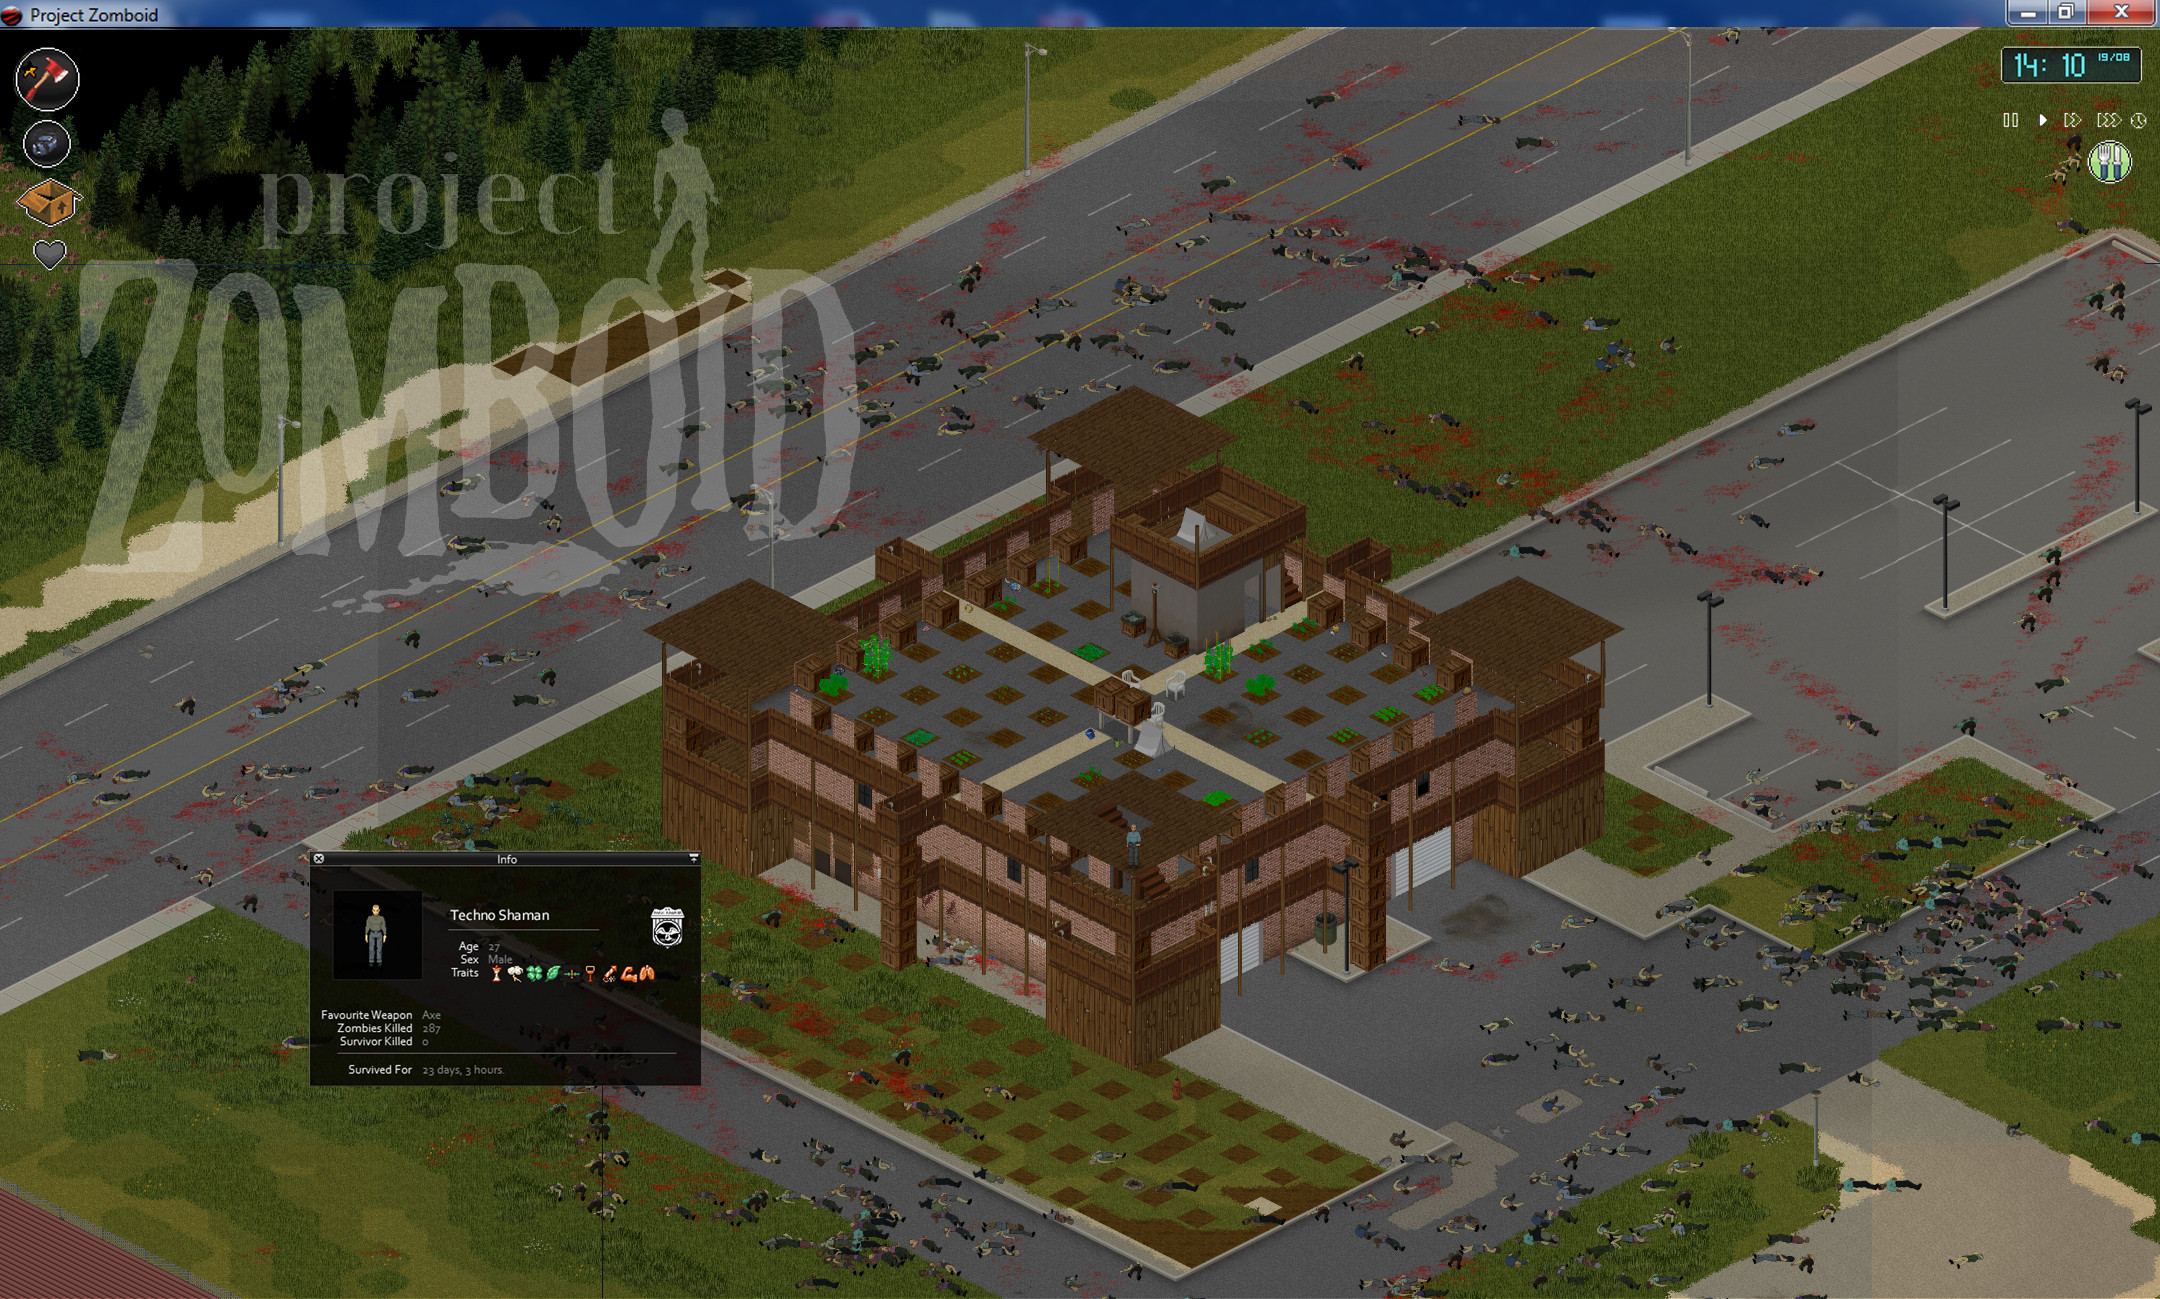 Steam community guide project zomboid quick start for West out of best project